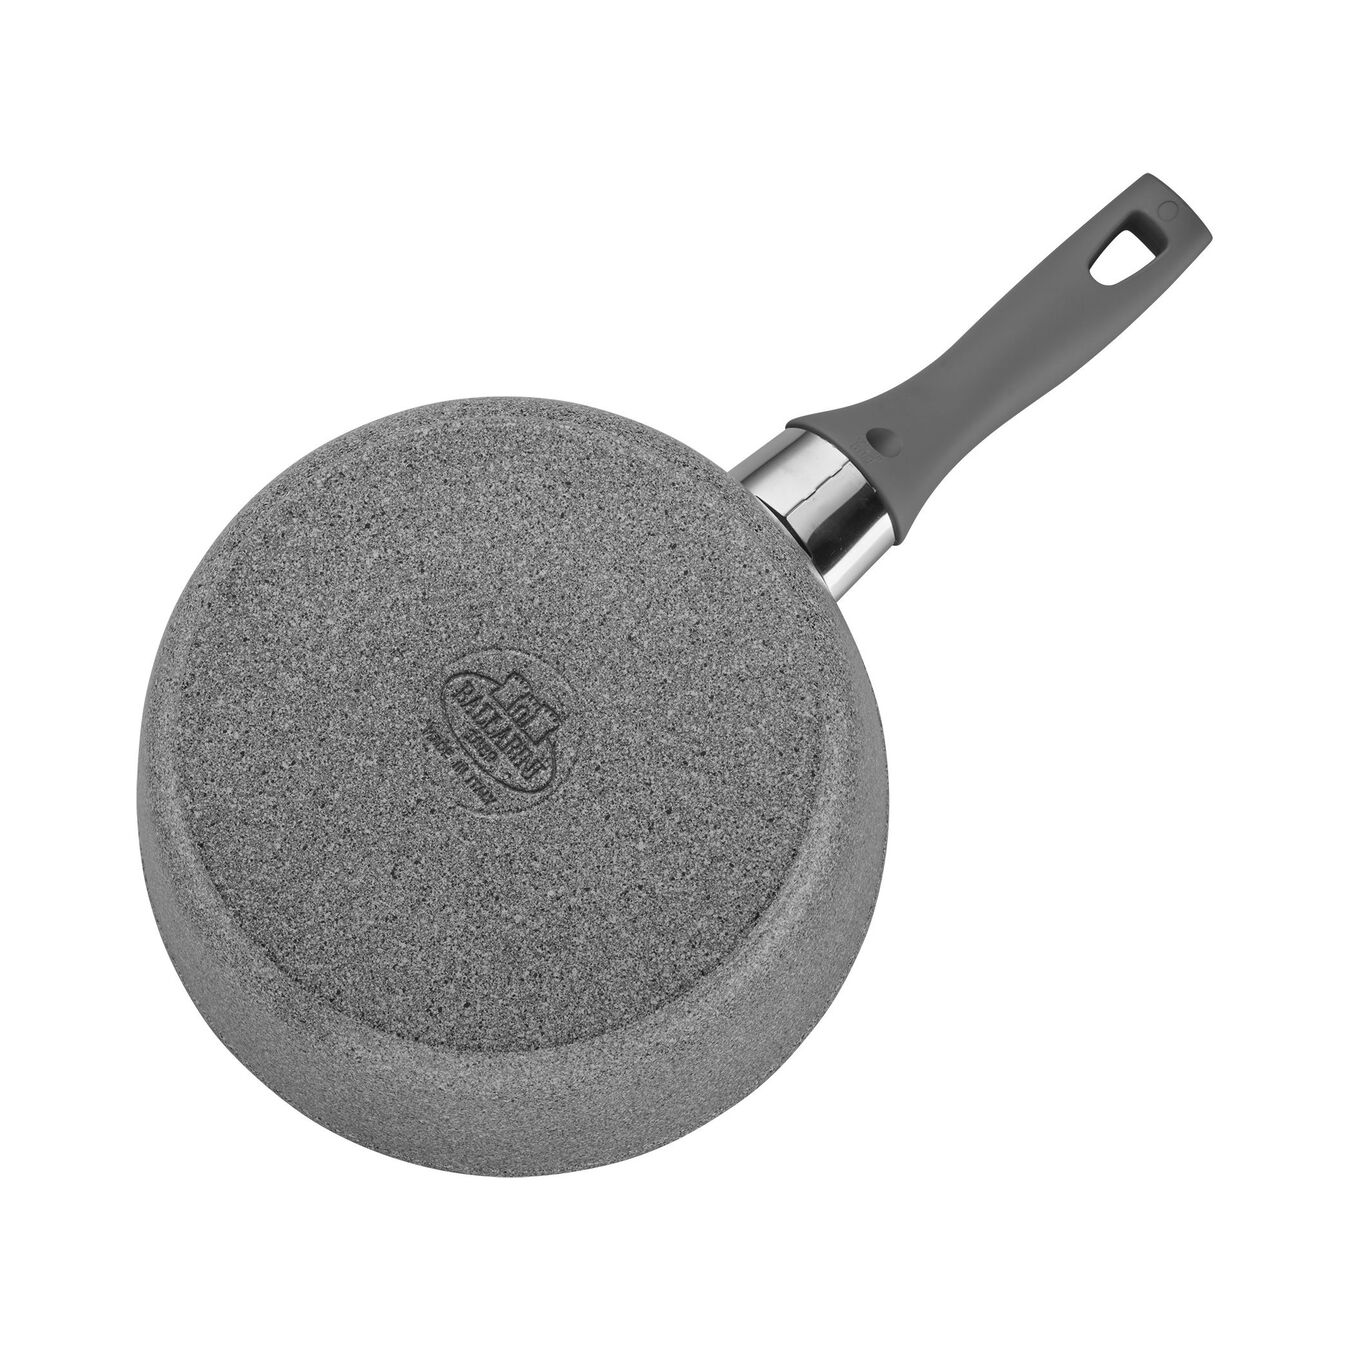 2.75 qt, Sauce pan,,large 4